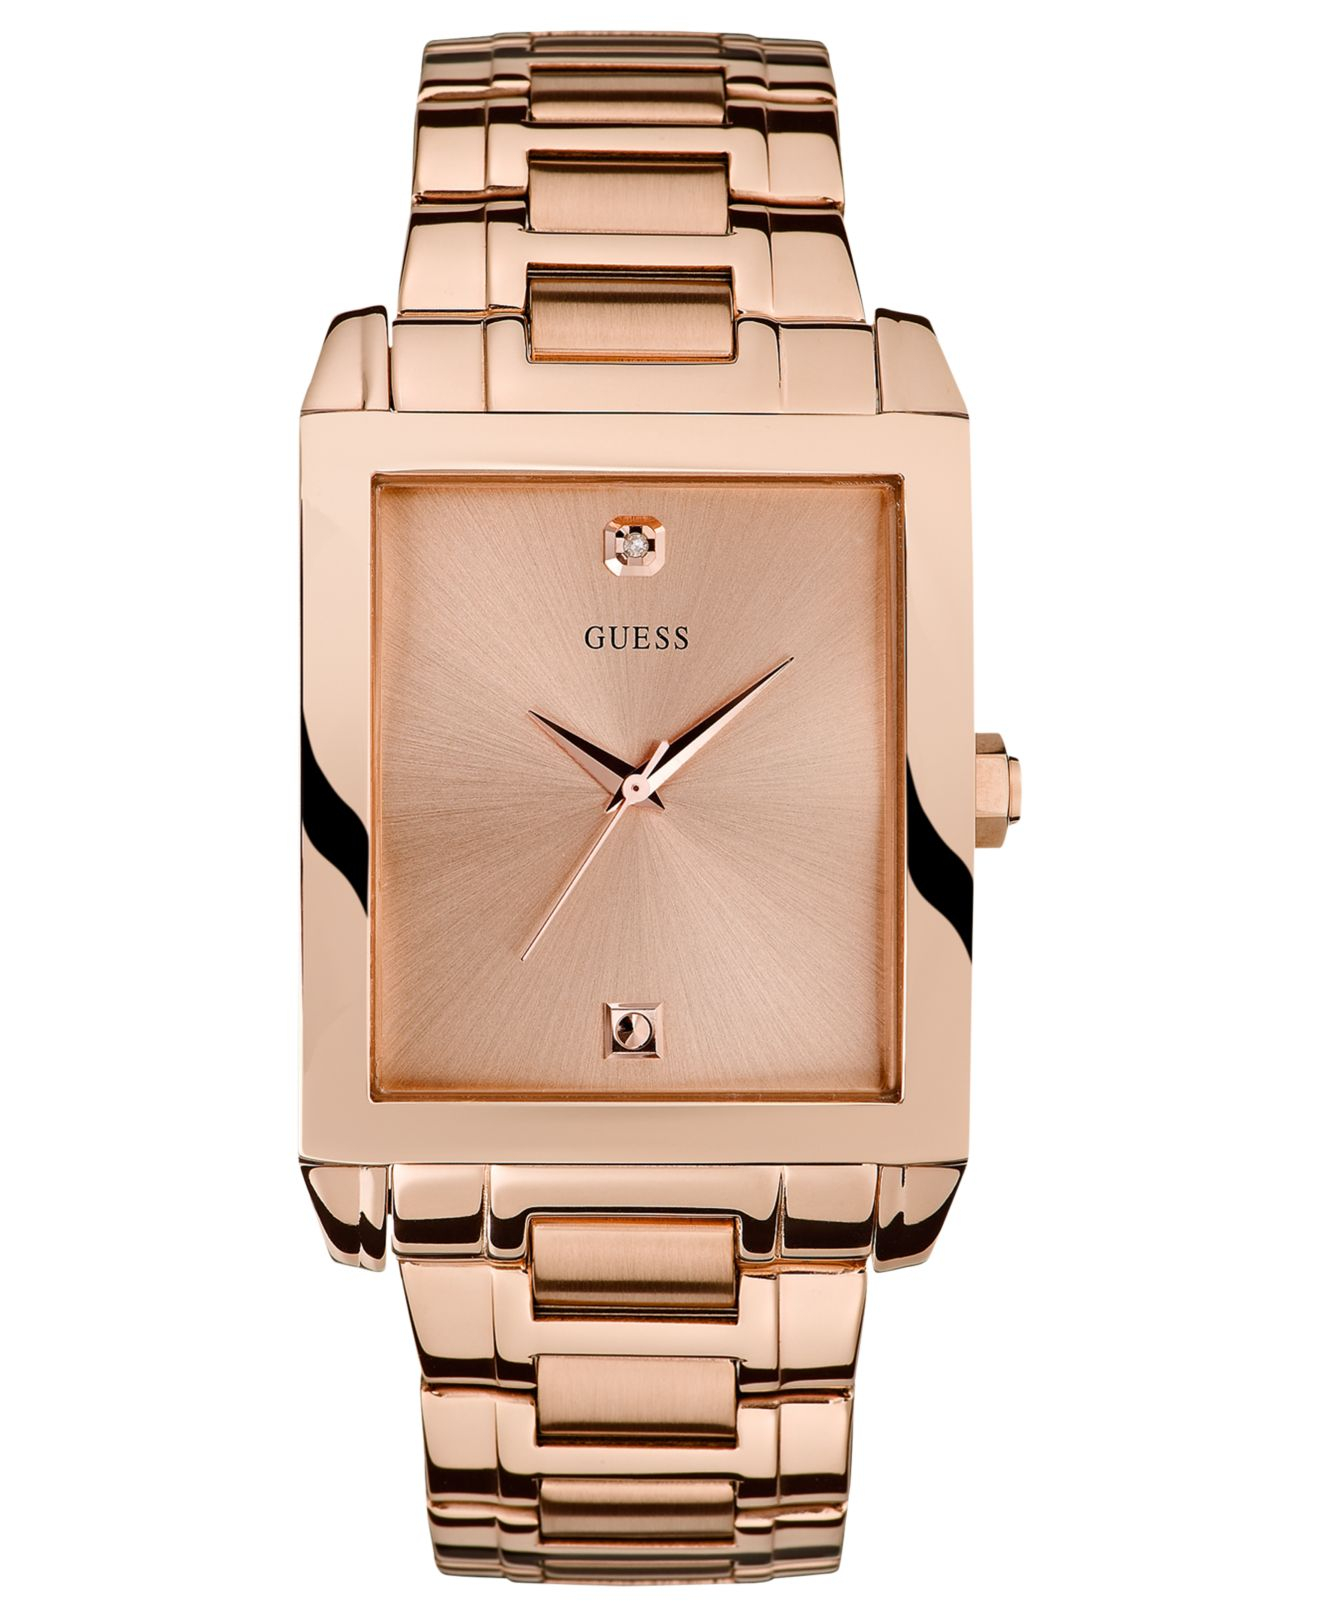 2019 year for women- Gold Rose watch guess